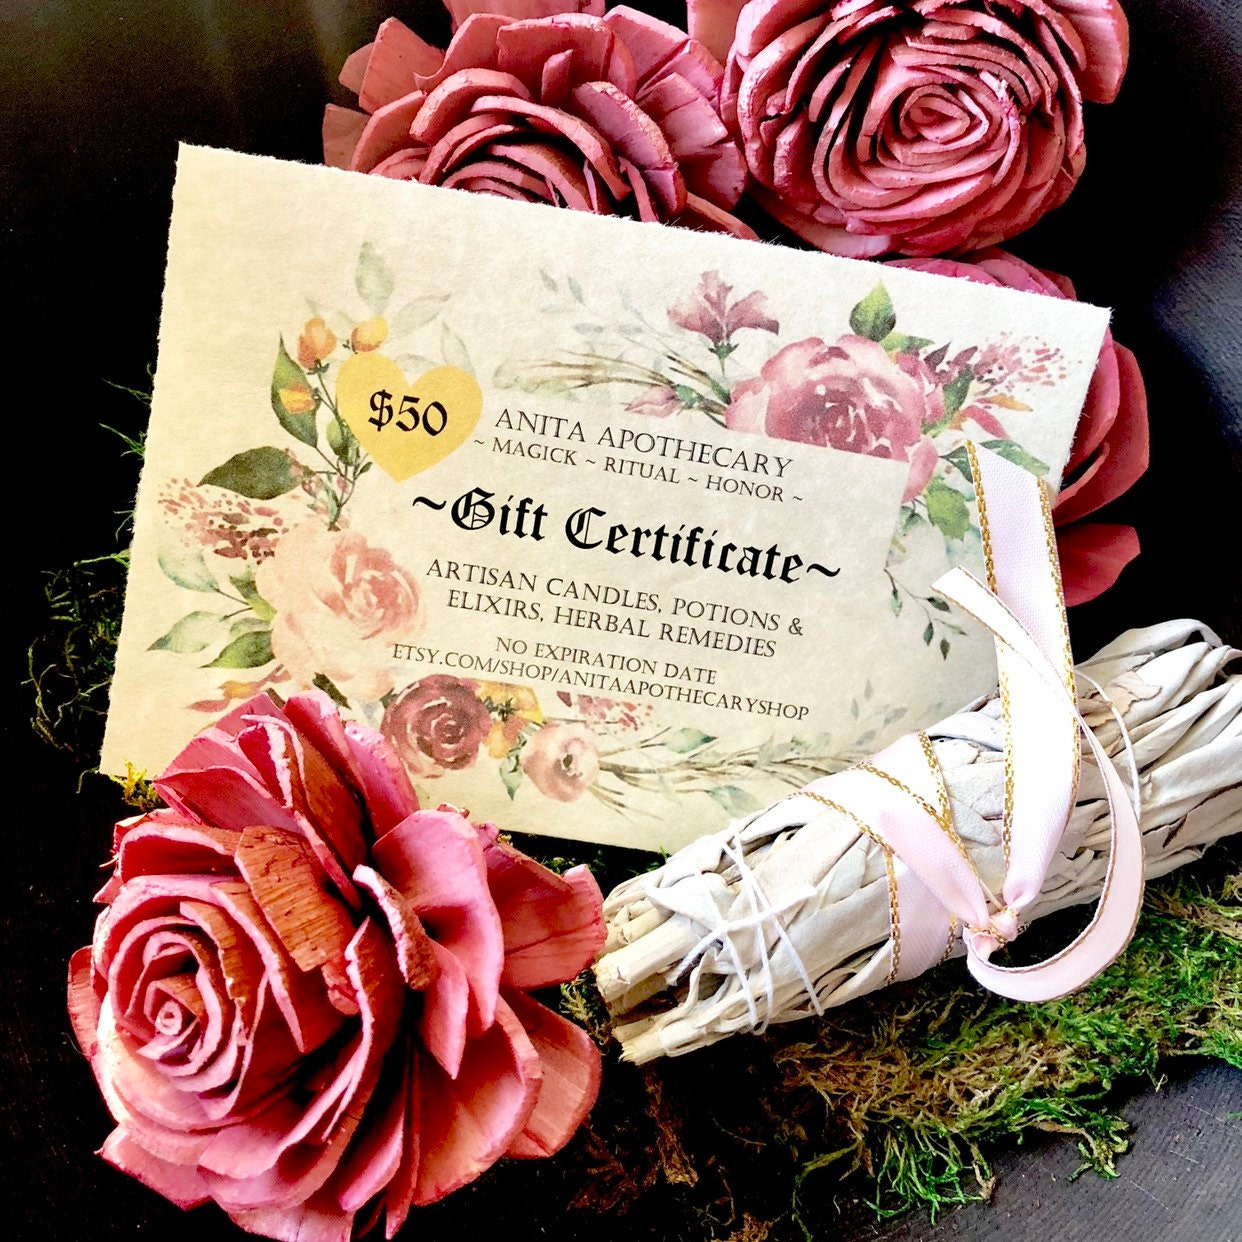 Gift Certificate Anita Apothecary Witchcraft Magick Etsy